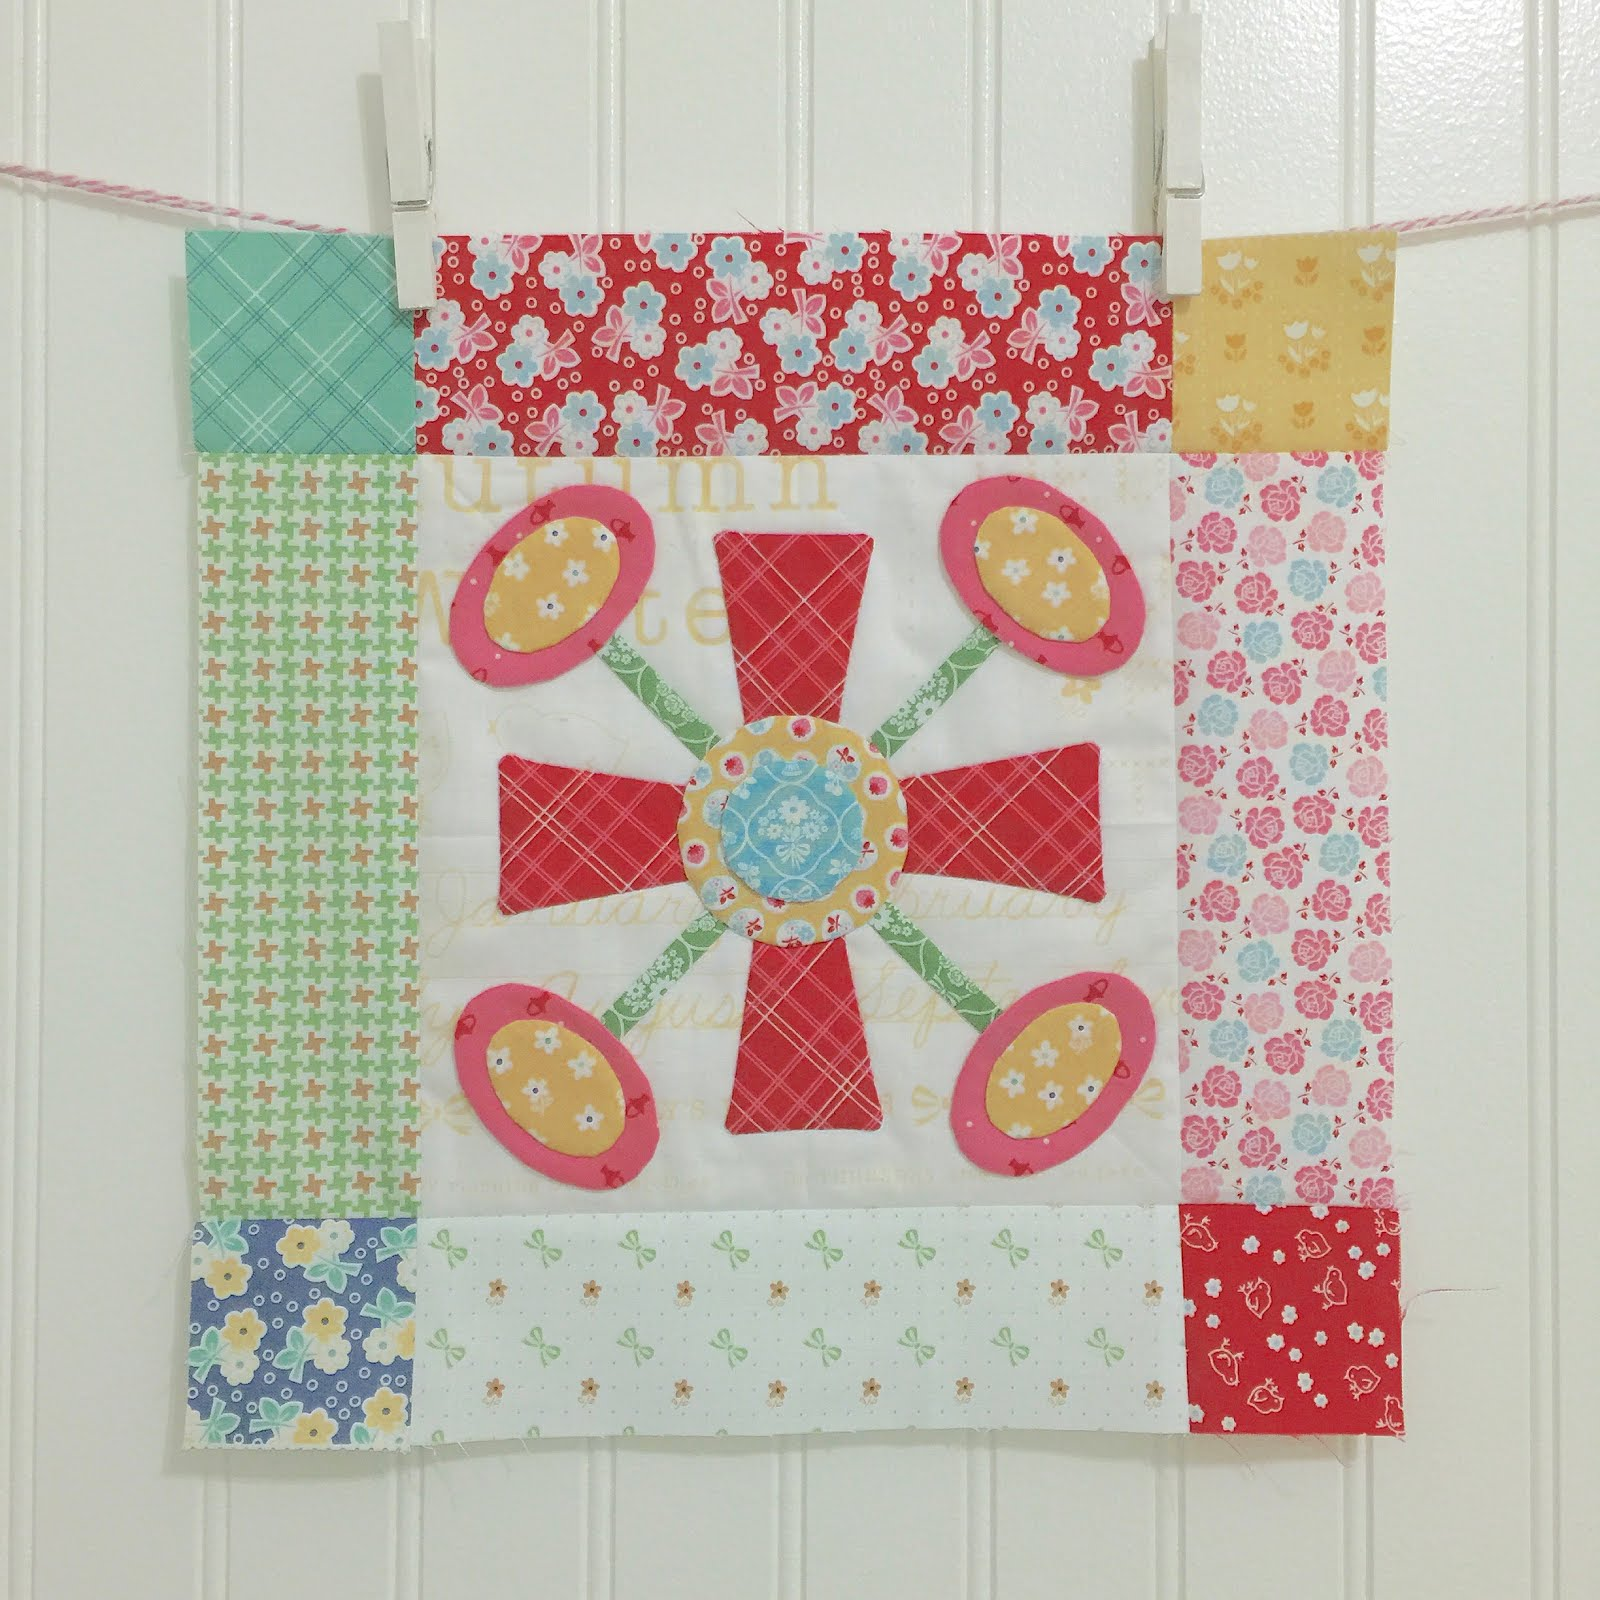 BLOOM Sew Along!